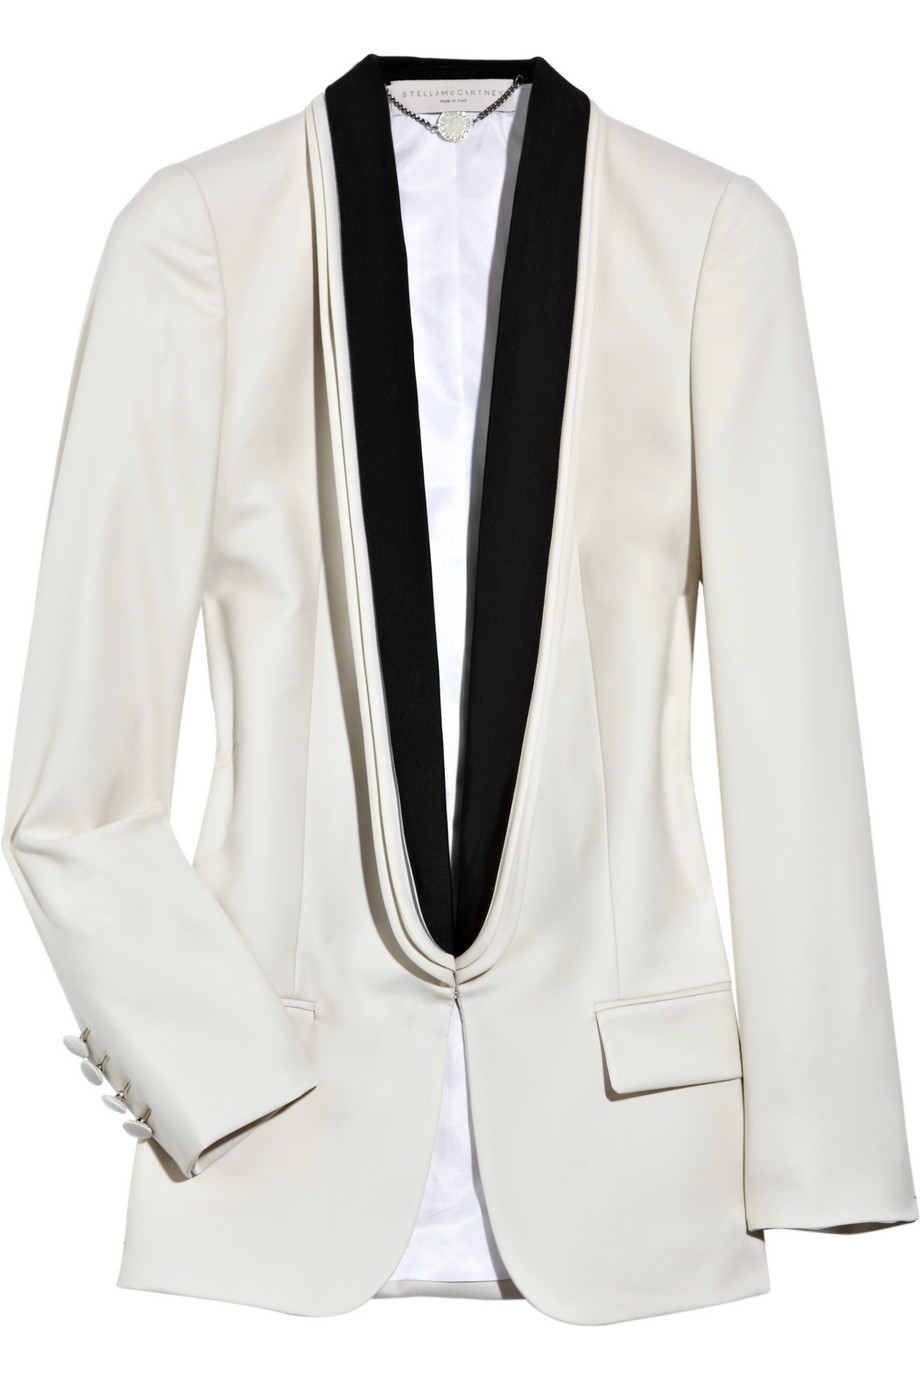 stella-mccartney-ivory-wool-twill-tuxedo-jacket-product-1-2278584-053144156.jpg